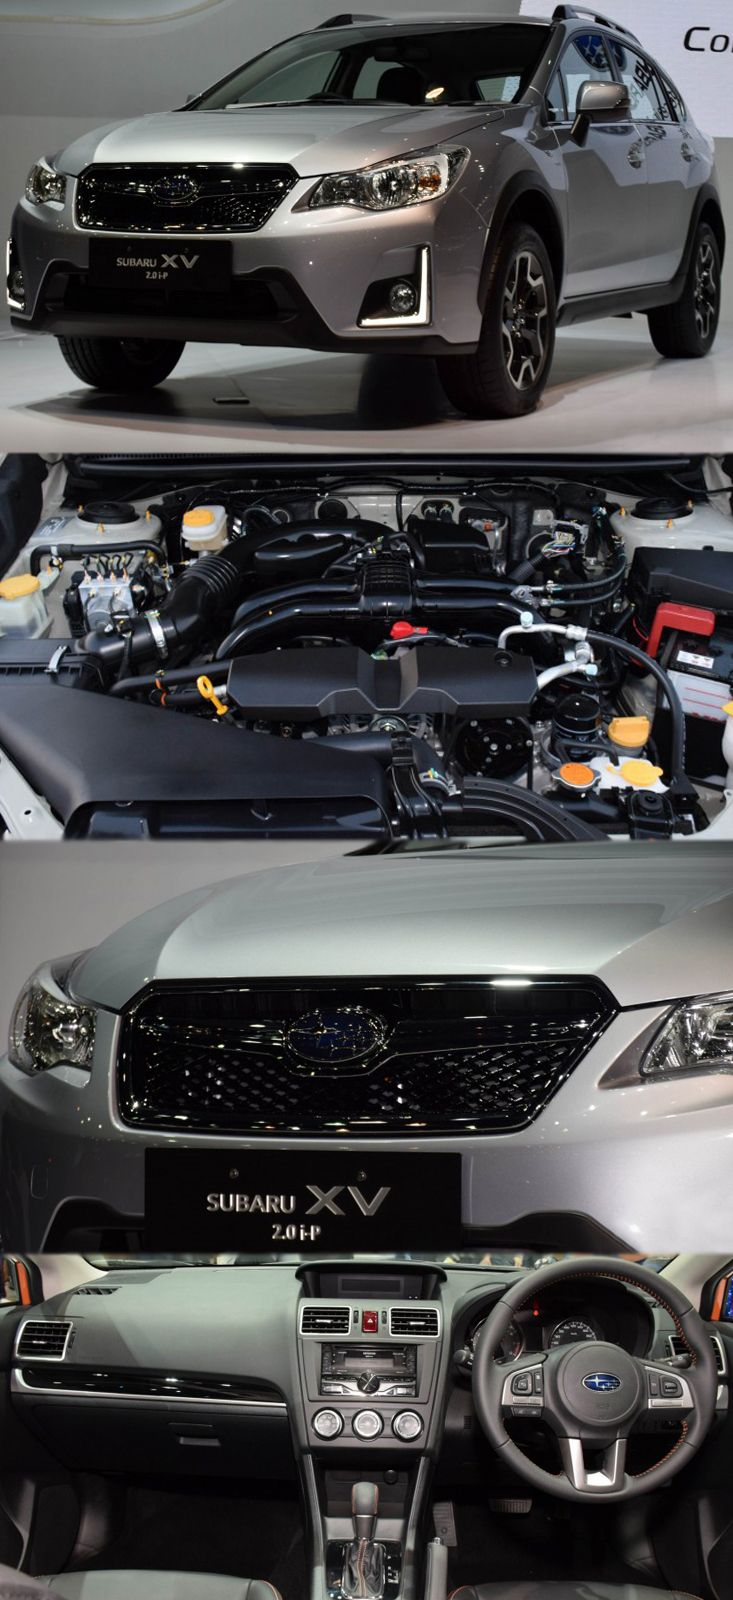 Subaru xv offers extra efficient boxer engines get more details at http